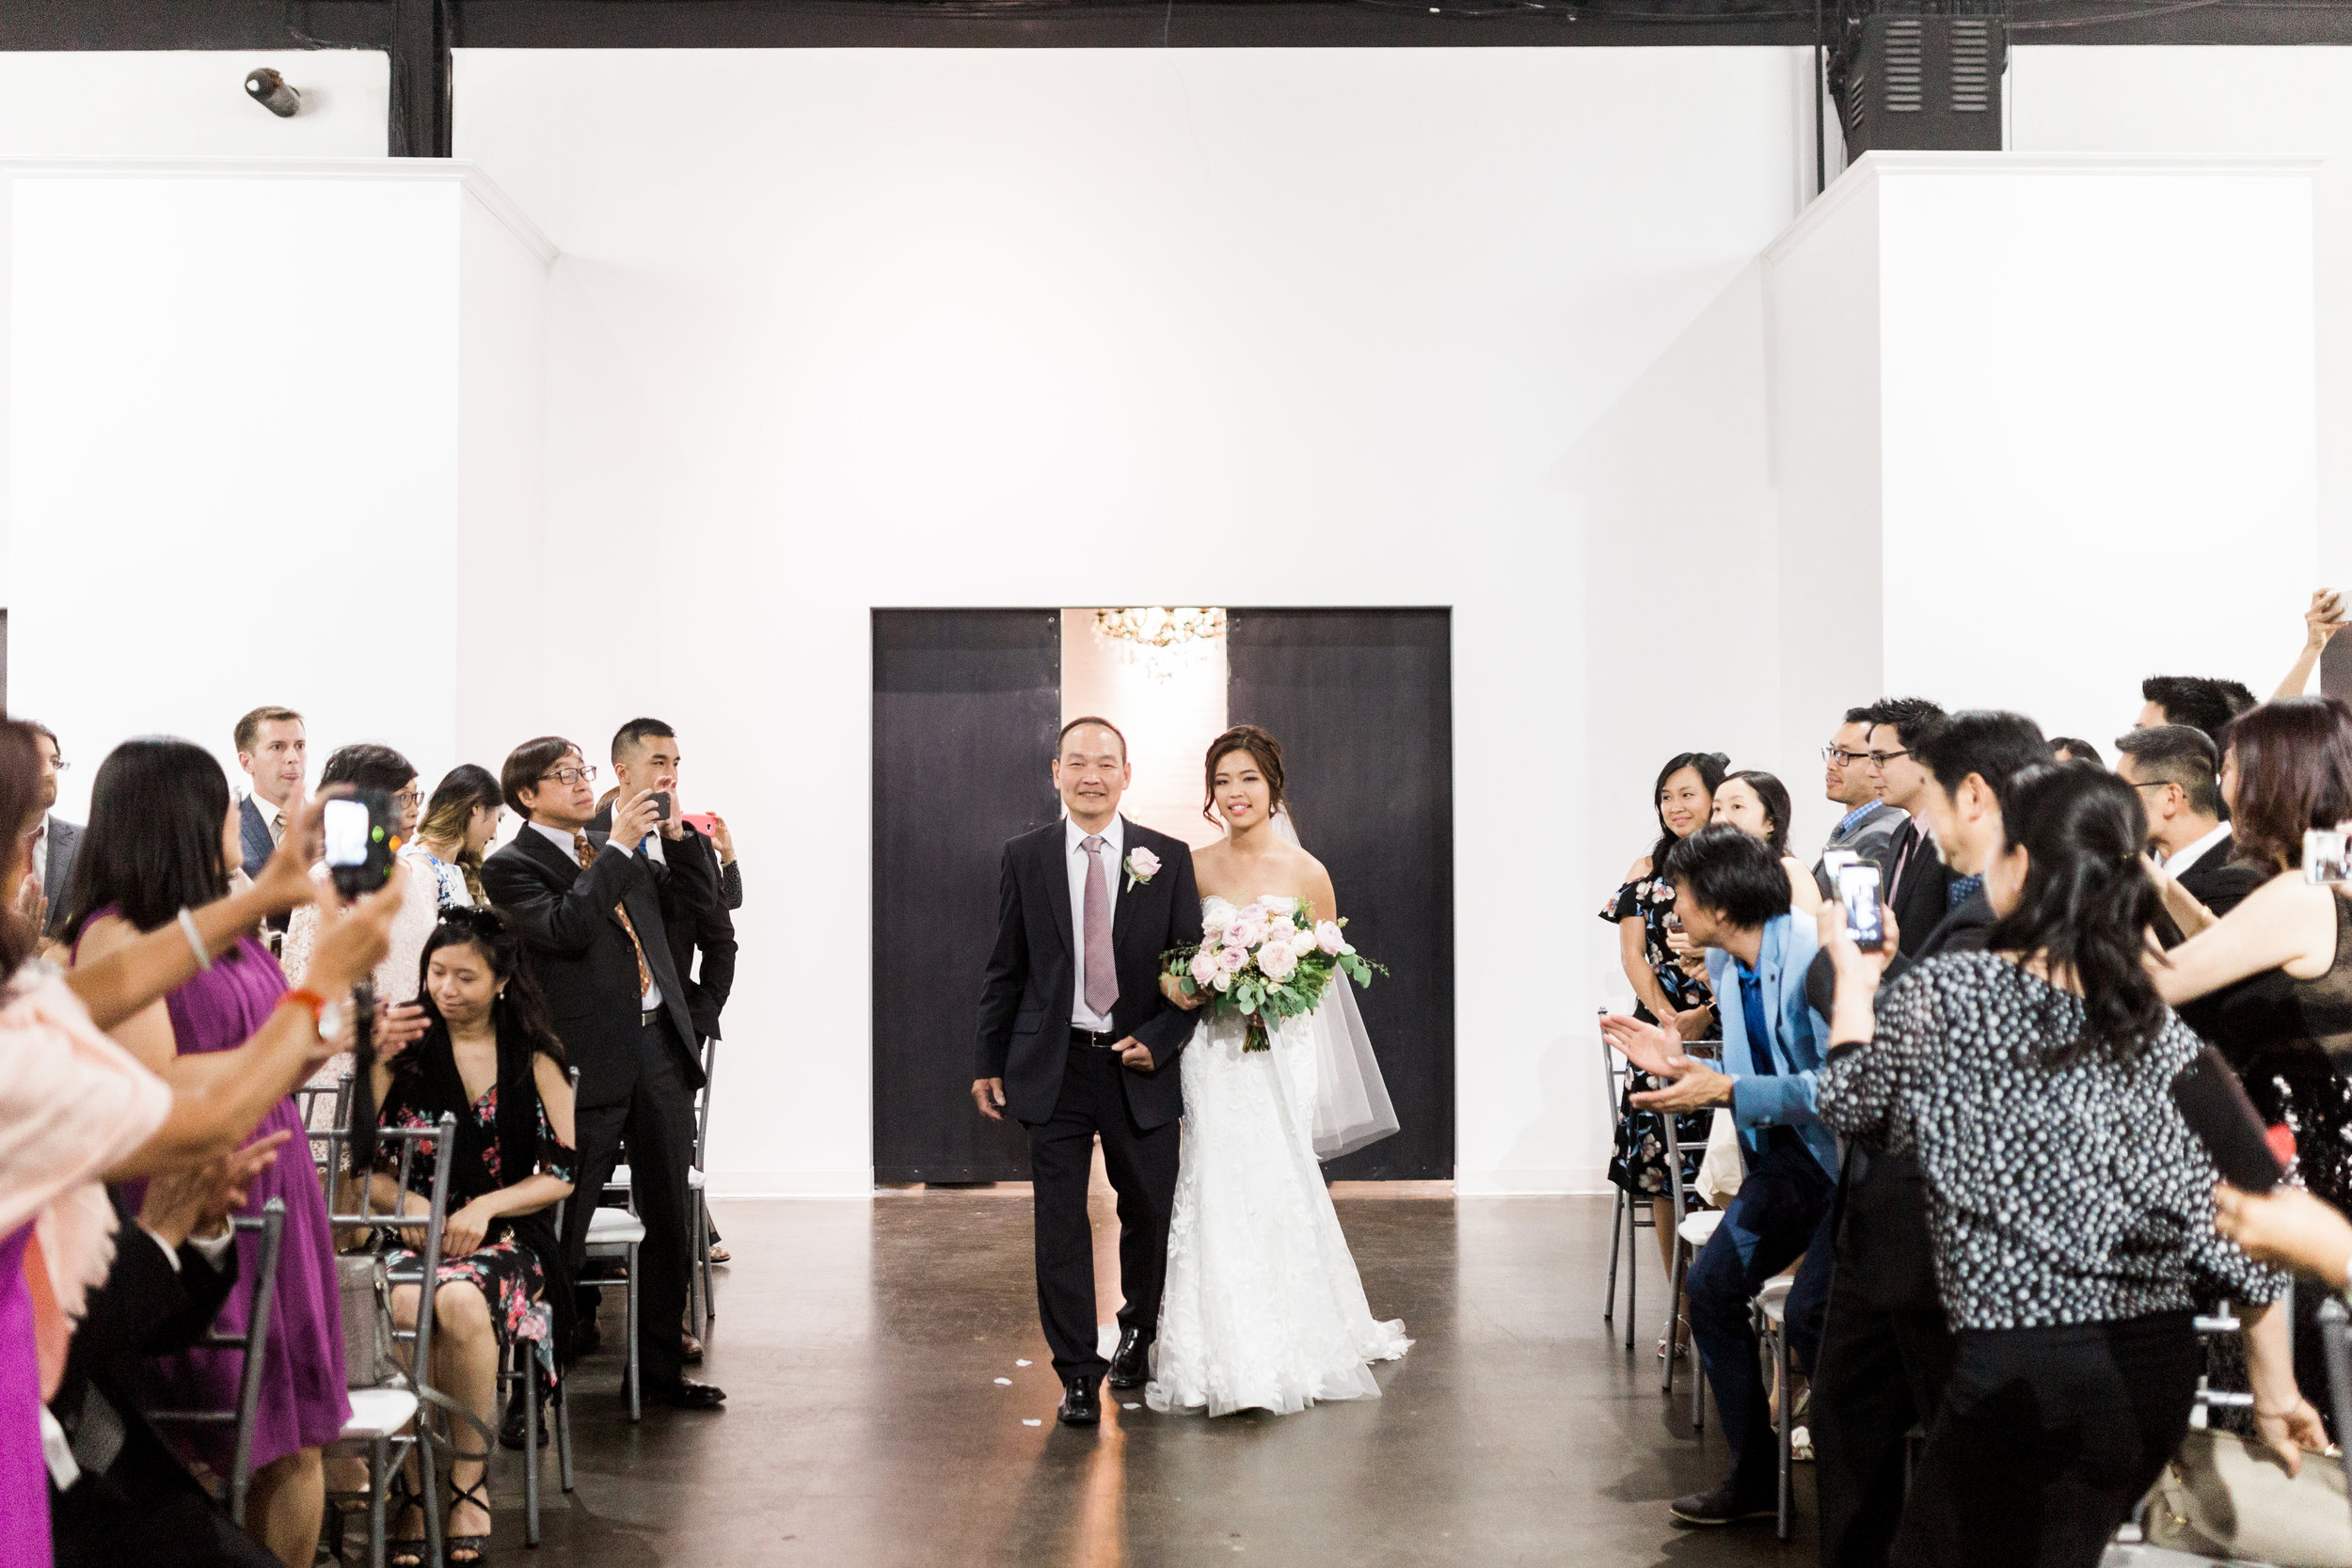 6. The Warehouse Venue Wedding - Ceremony-59.jpg